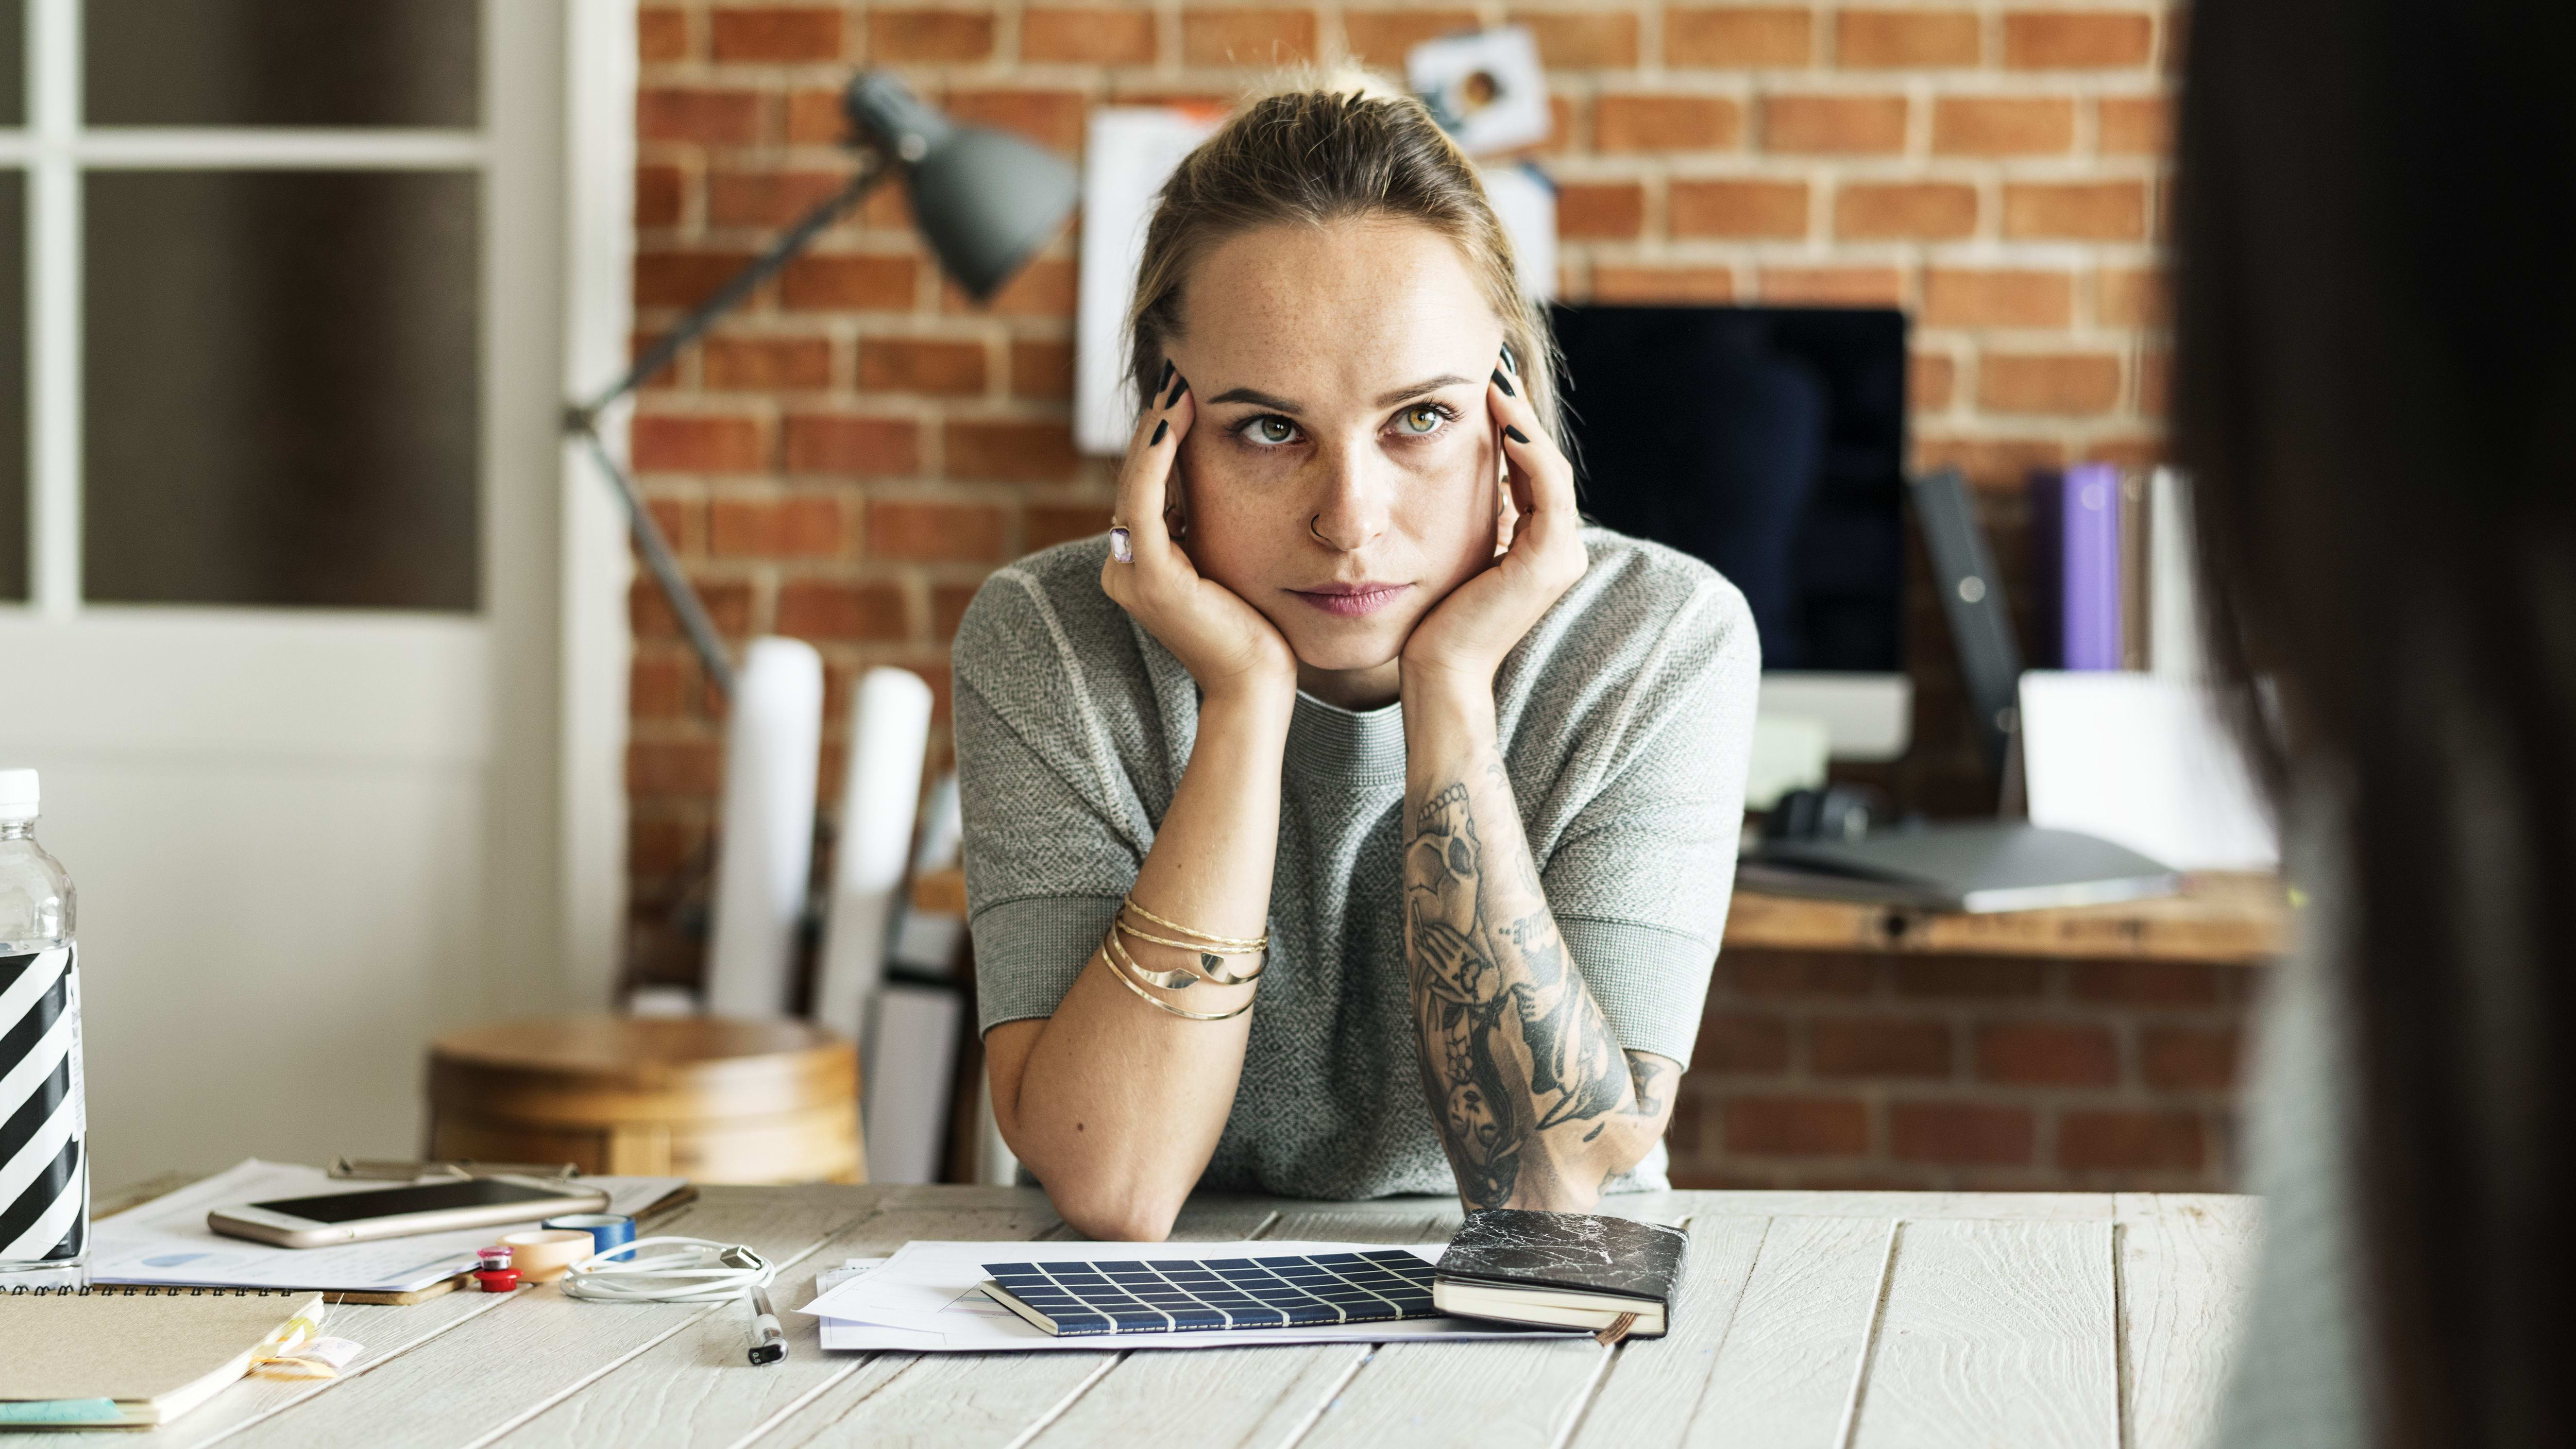 Hostile Work Environment — Is It The Job Or Just Your Attitude